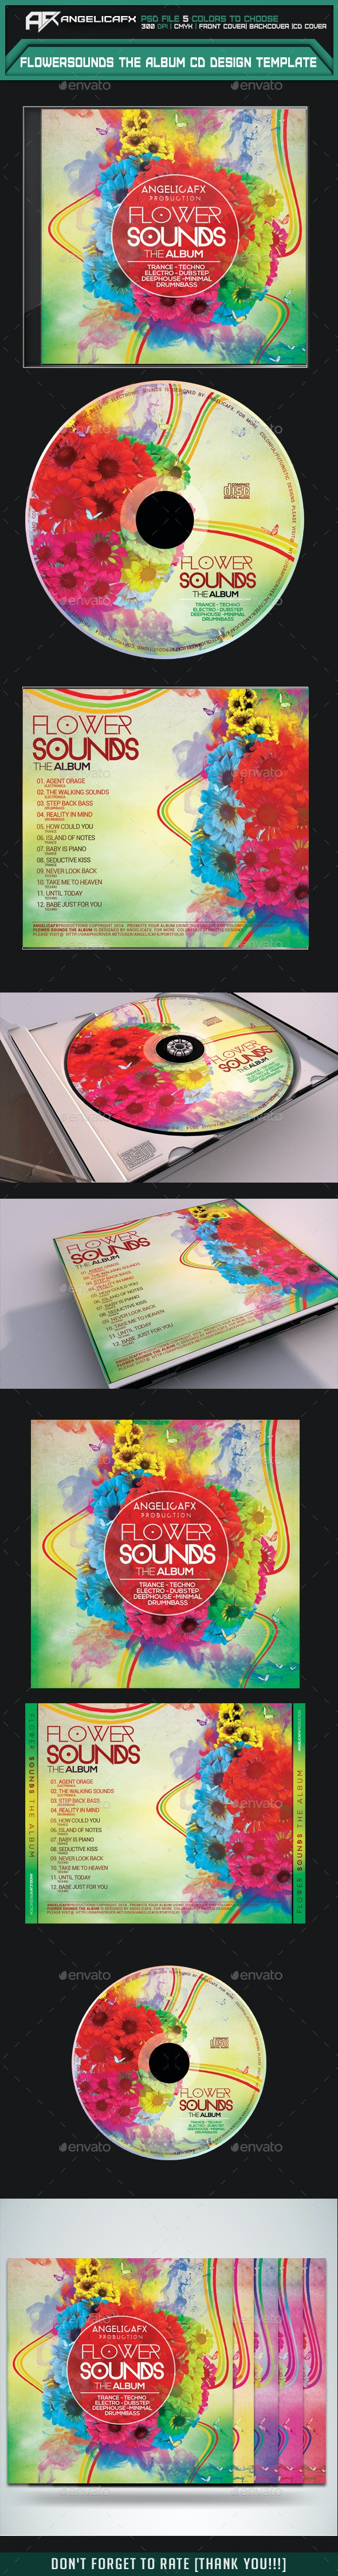 Flower Sounds The Album CD Design Template - CD & DVD Artwork Print Templates